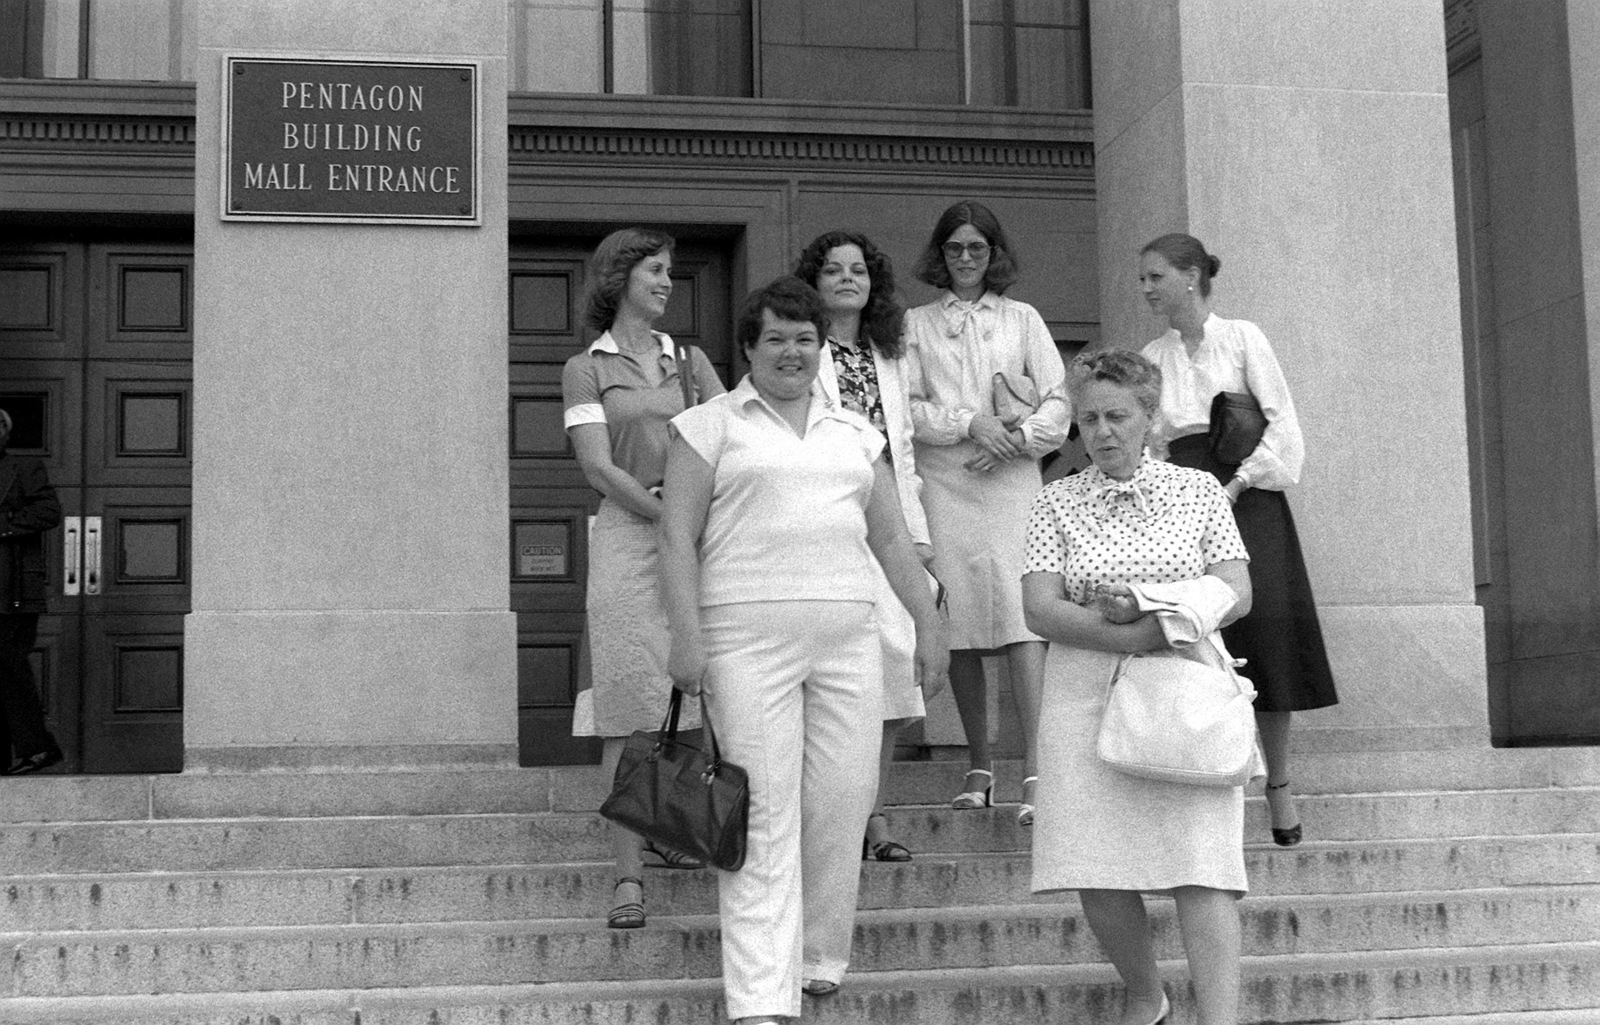 Six lovely and reasonable ladies, is how the members of Congress described the ladies who filed a petition to keep the Quantico hospital at the Marine Corps Development and Education Command open for services. The ladies, military wives, leave the Pentagon after filing their petition. The ladies, left to right, are : Louise Cruz, Sharon Heberlein, Nancy Fournier, Dianna Breuss, Anita Bonomo and Janet Schenkel